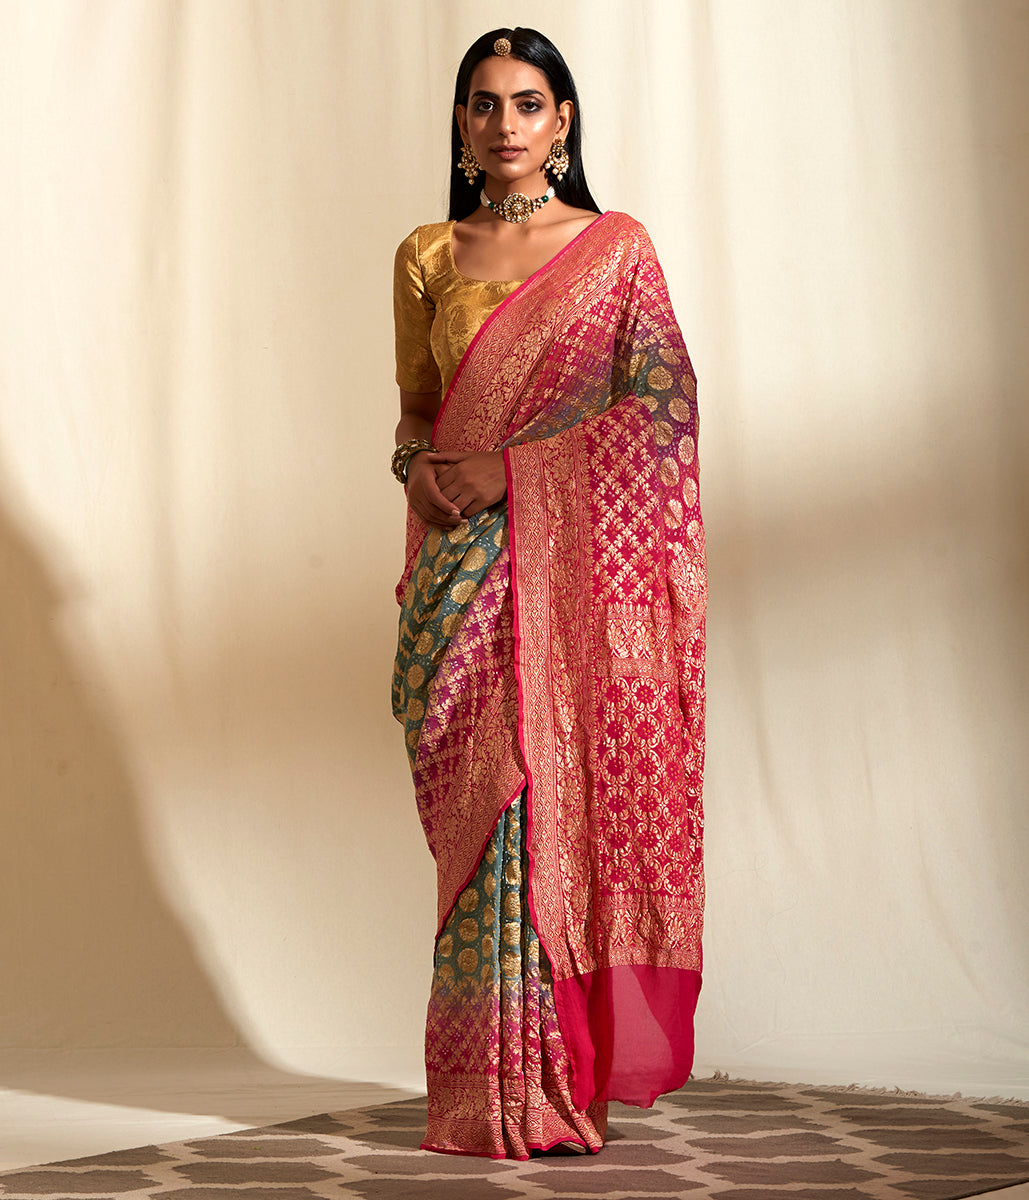 Handwoven Banarasi Bandhej Saree in Light Green and Pink ombre dye